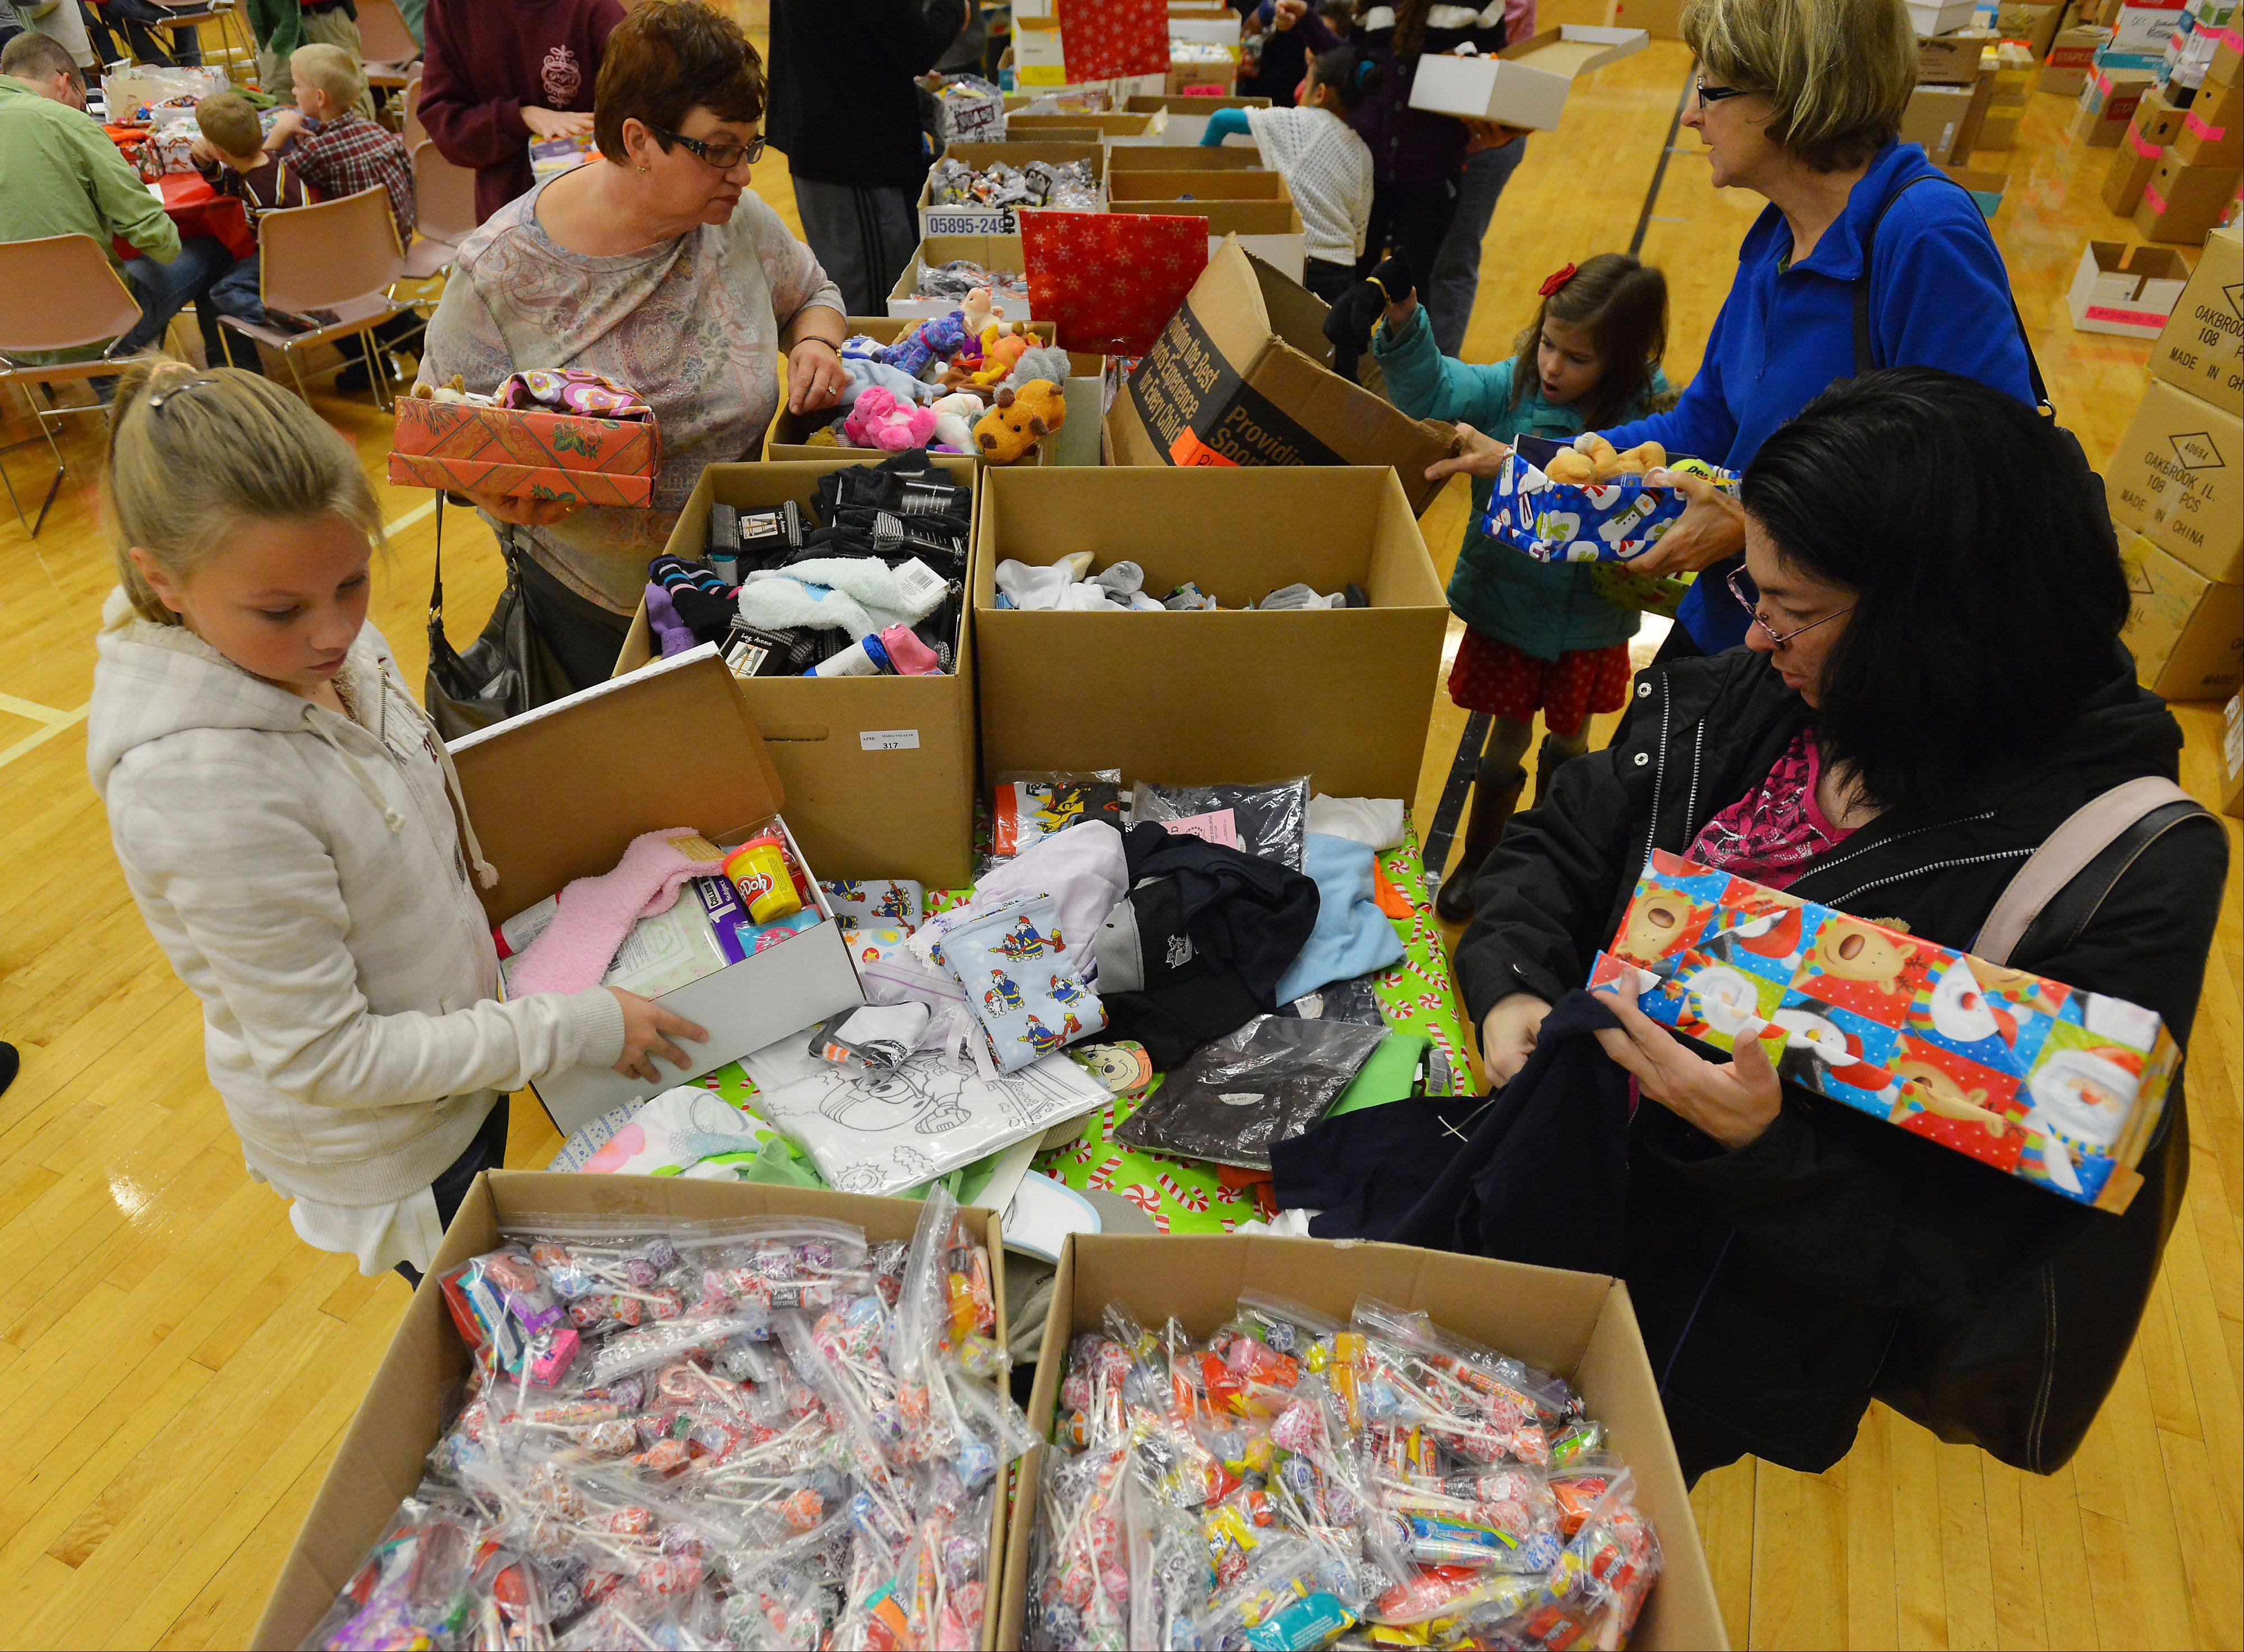 Volunteers pack shoe boxes with gifts, toys, hygiene items and school supplies Saturday at Immanuel Church in Gurnee as part of Operation Christmas Child. The church aimed to pack 4,000 gift boxes to be delivered to needy children in countries such as Congo, Cameroon and the Ukraine.